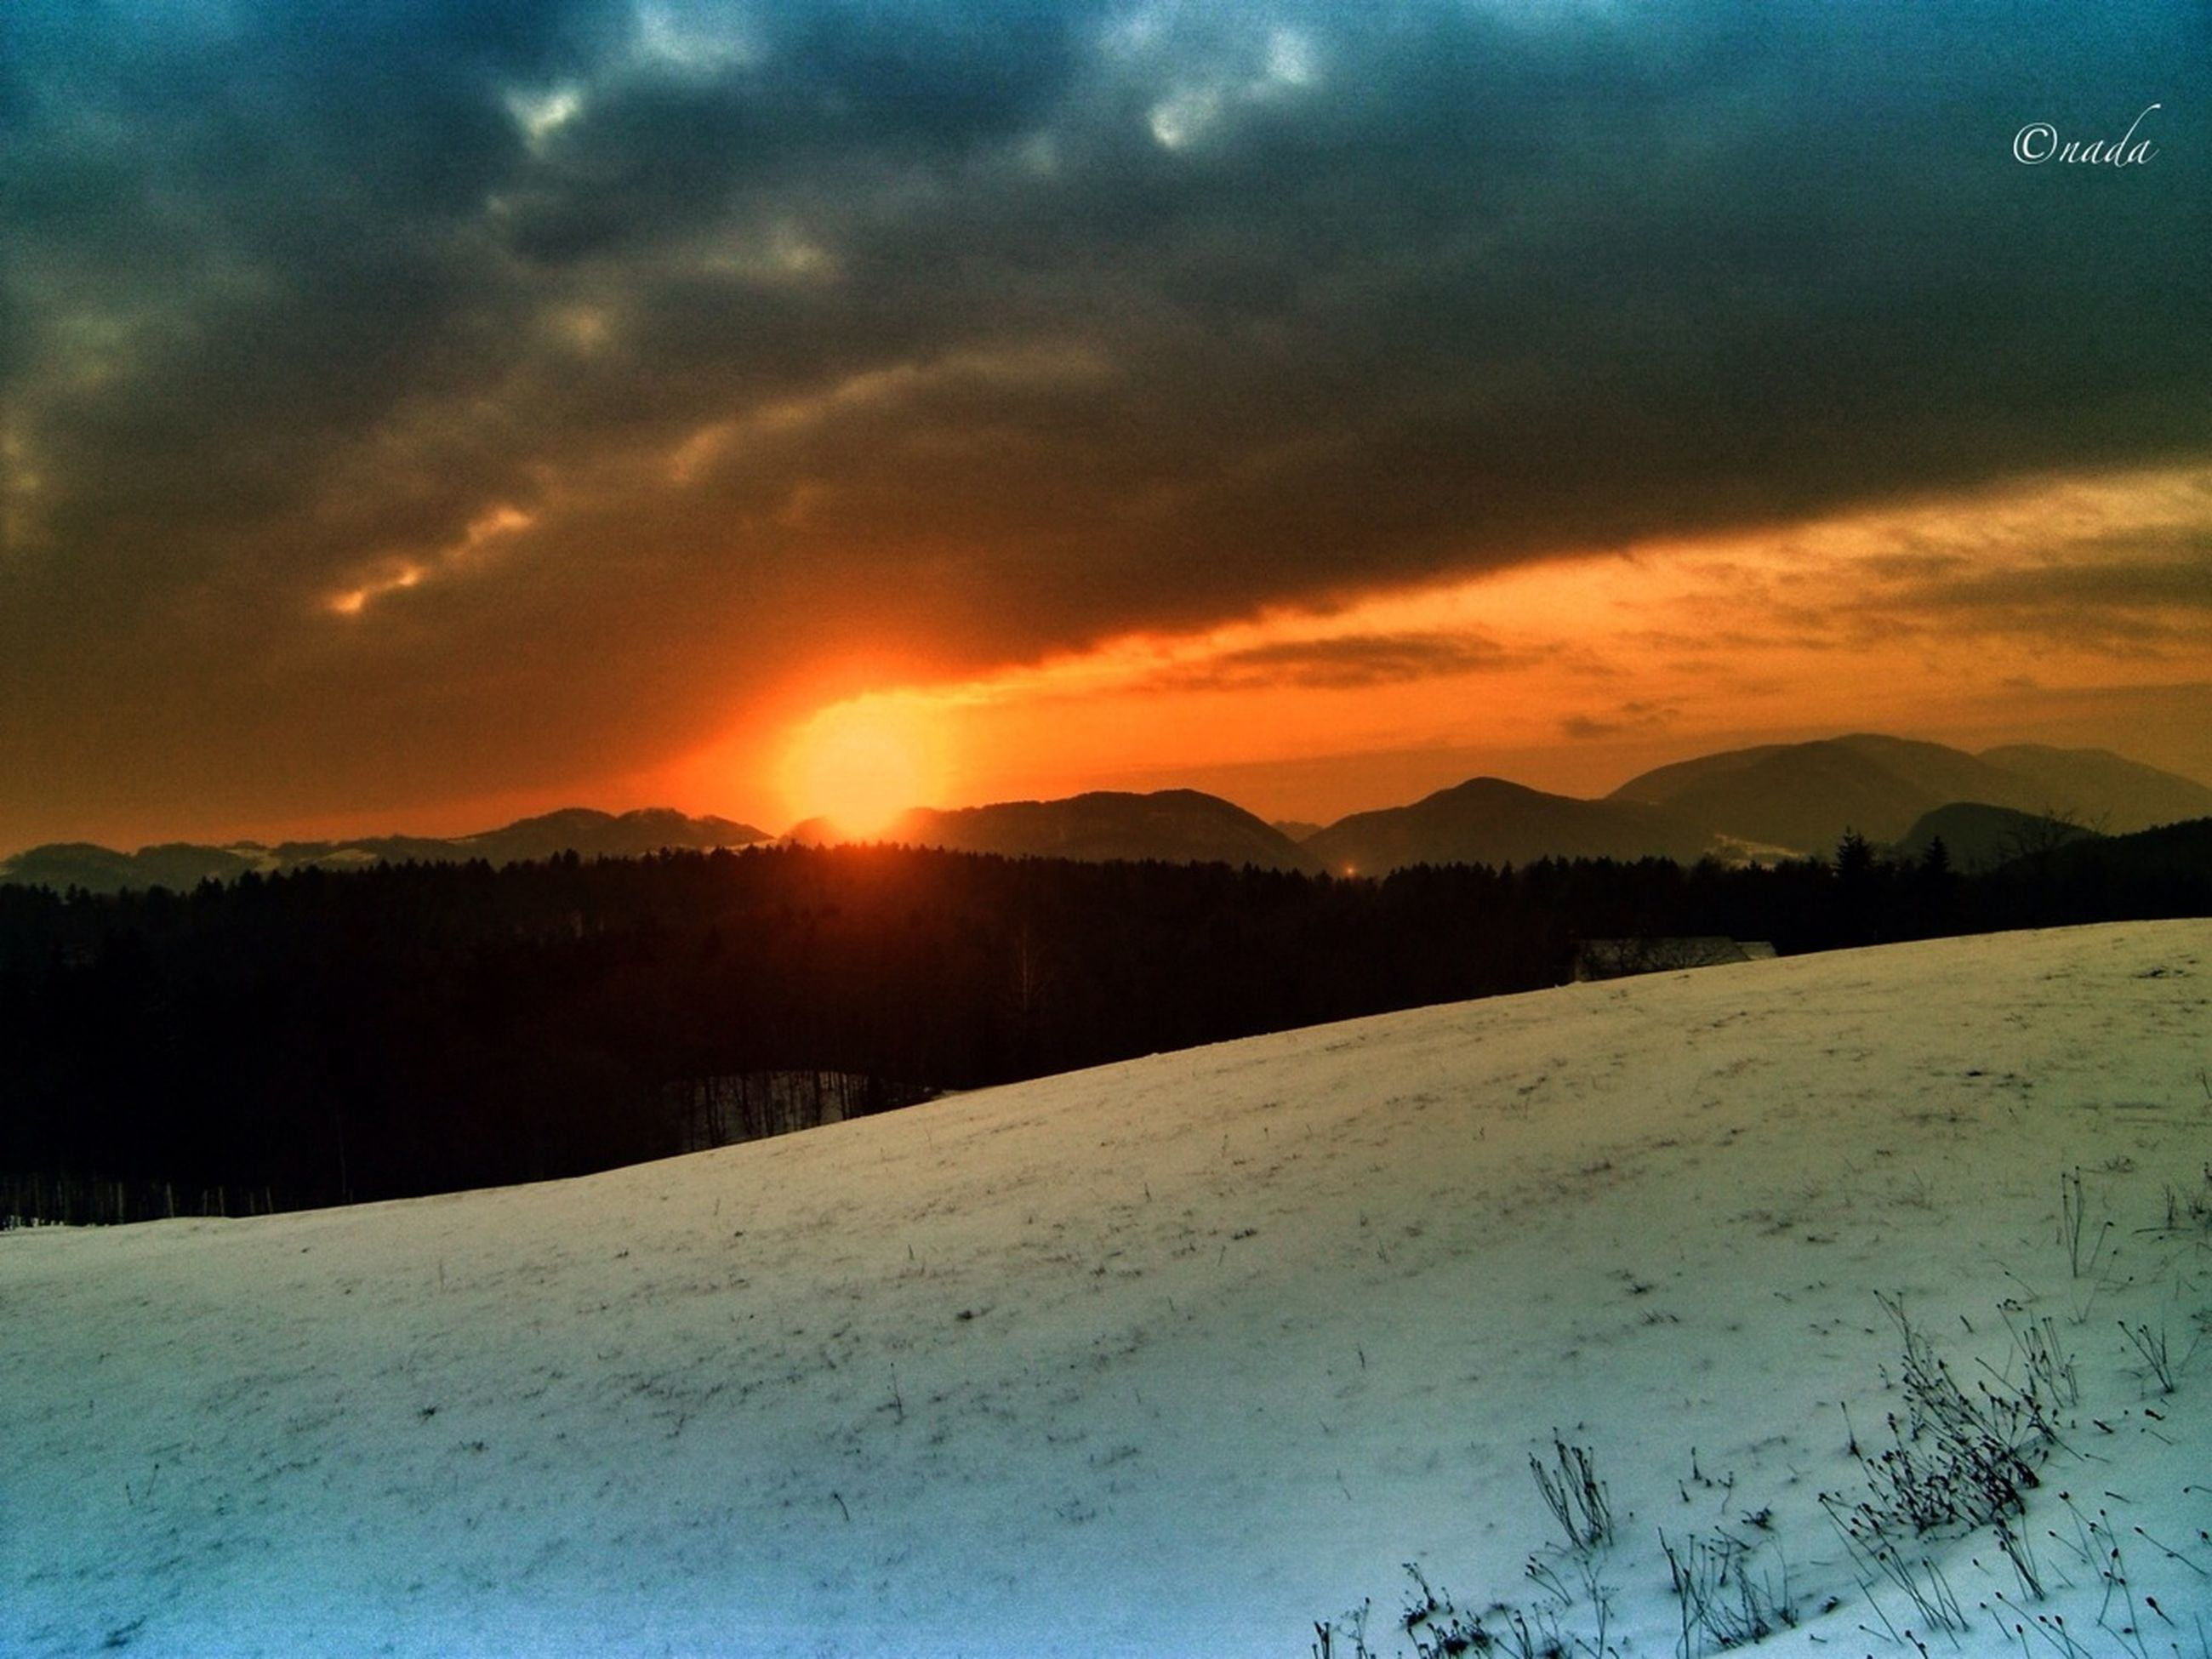 snow, winter, cold temperature, sunset, tranquil scene, scenics, season, tranquility, beauty in nature, landscape, weather, sky, sun, covering, orange color, nature, cloud - sky, mountain, idyllic, frozen